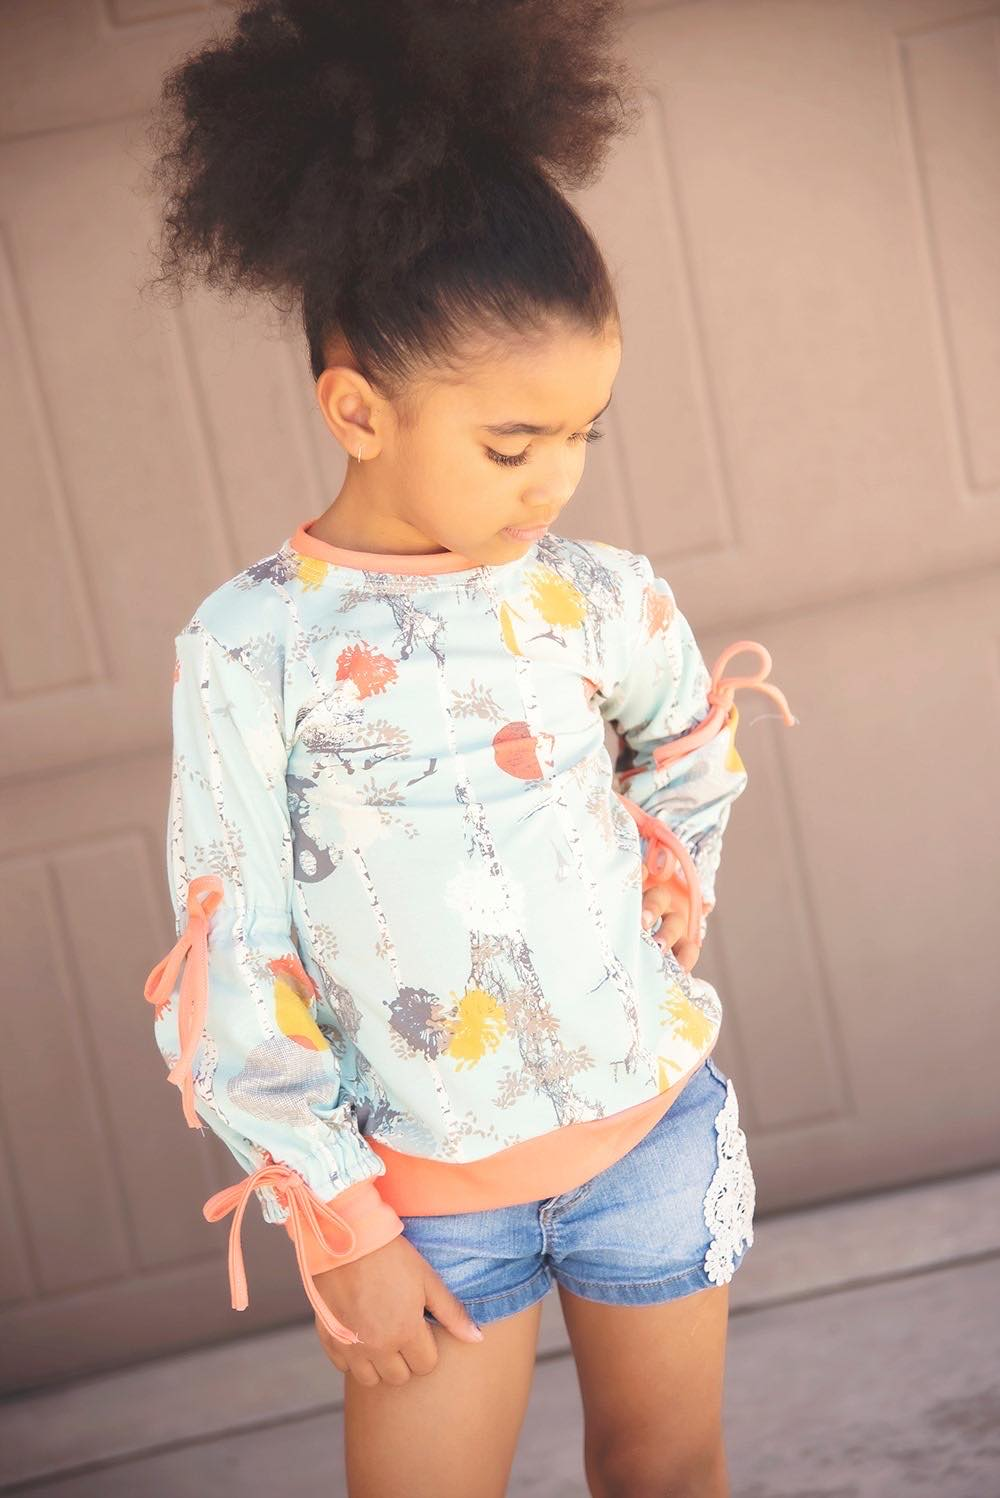 Genesis' Knit Top Sizes 2T to 14 Kids PDF Pattern